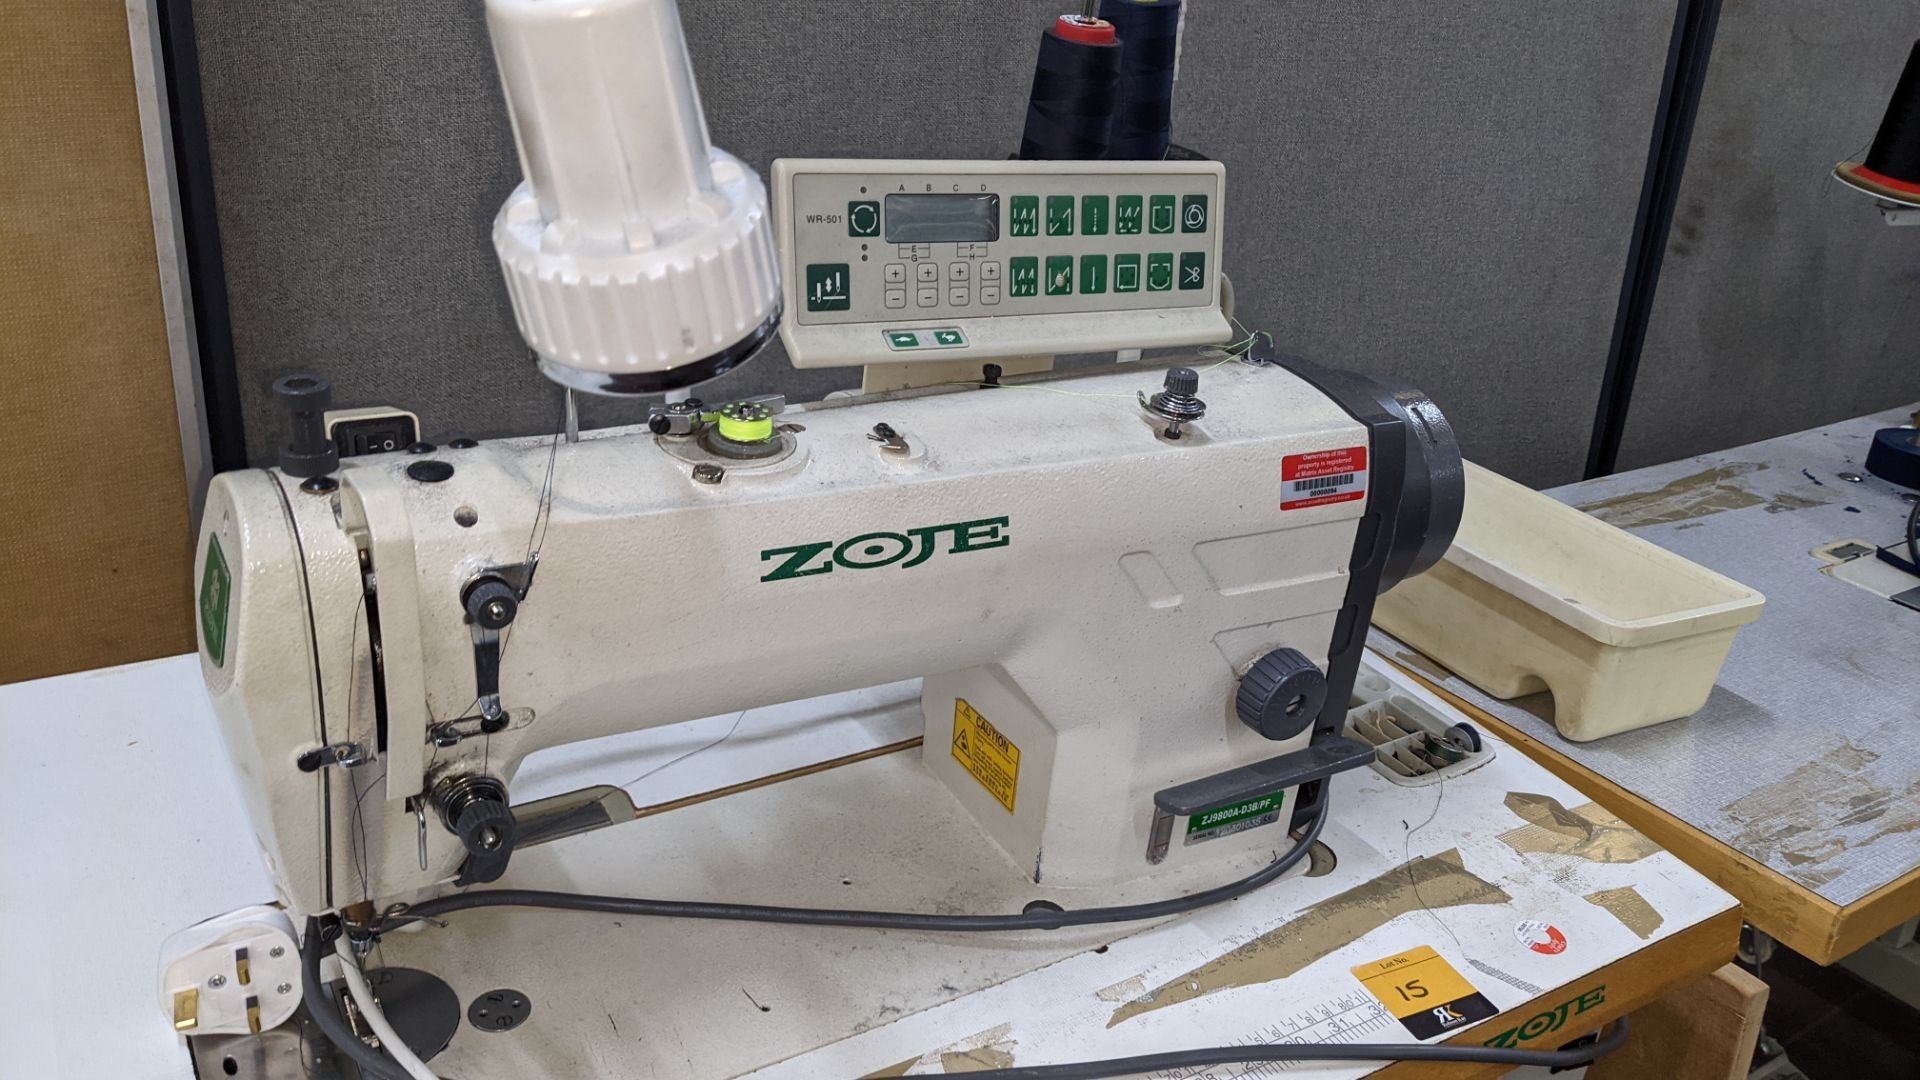 Zoje model ZJ9800A-D3B/PF lockstitch sewing machine with model WR-501 digital controller - Image 6 of 14